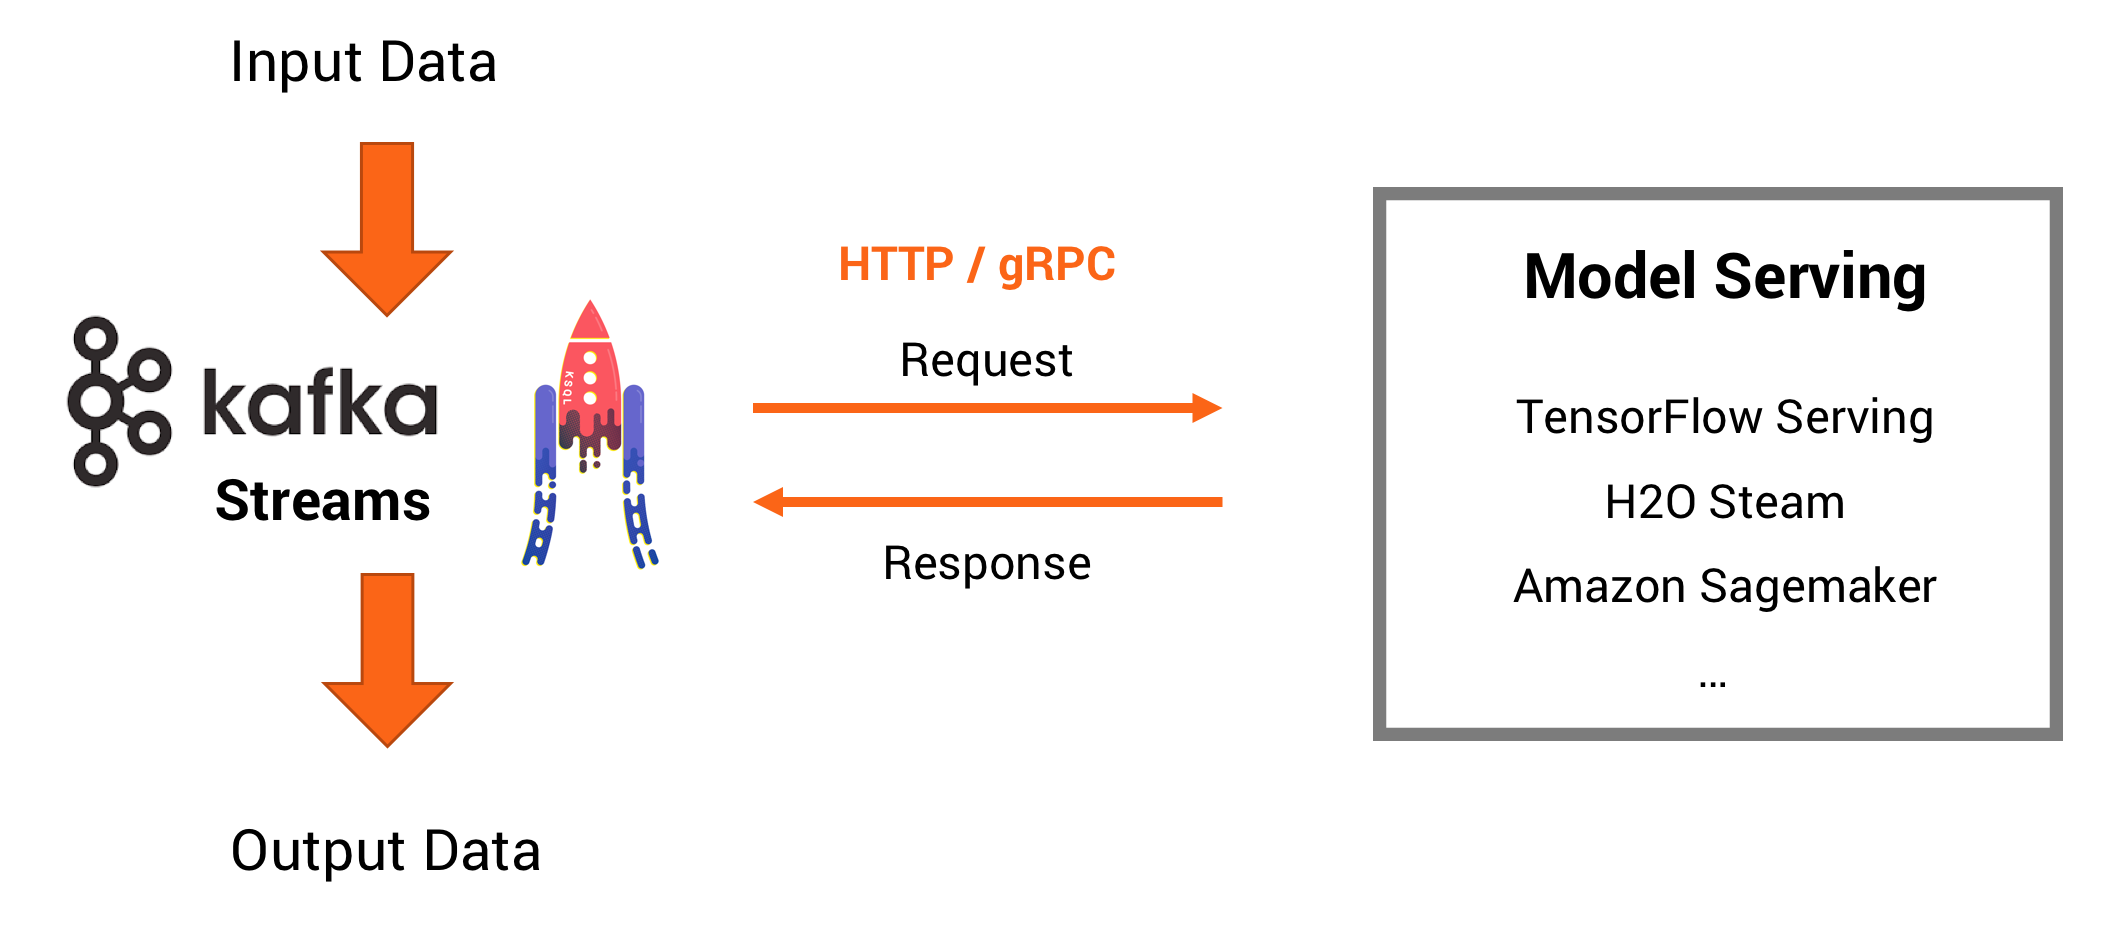 Kai Waehner » Blog Archive Model Serving: Stream Processing vs  RPC